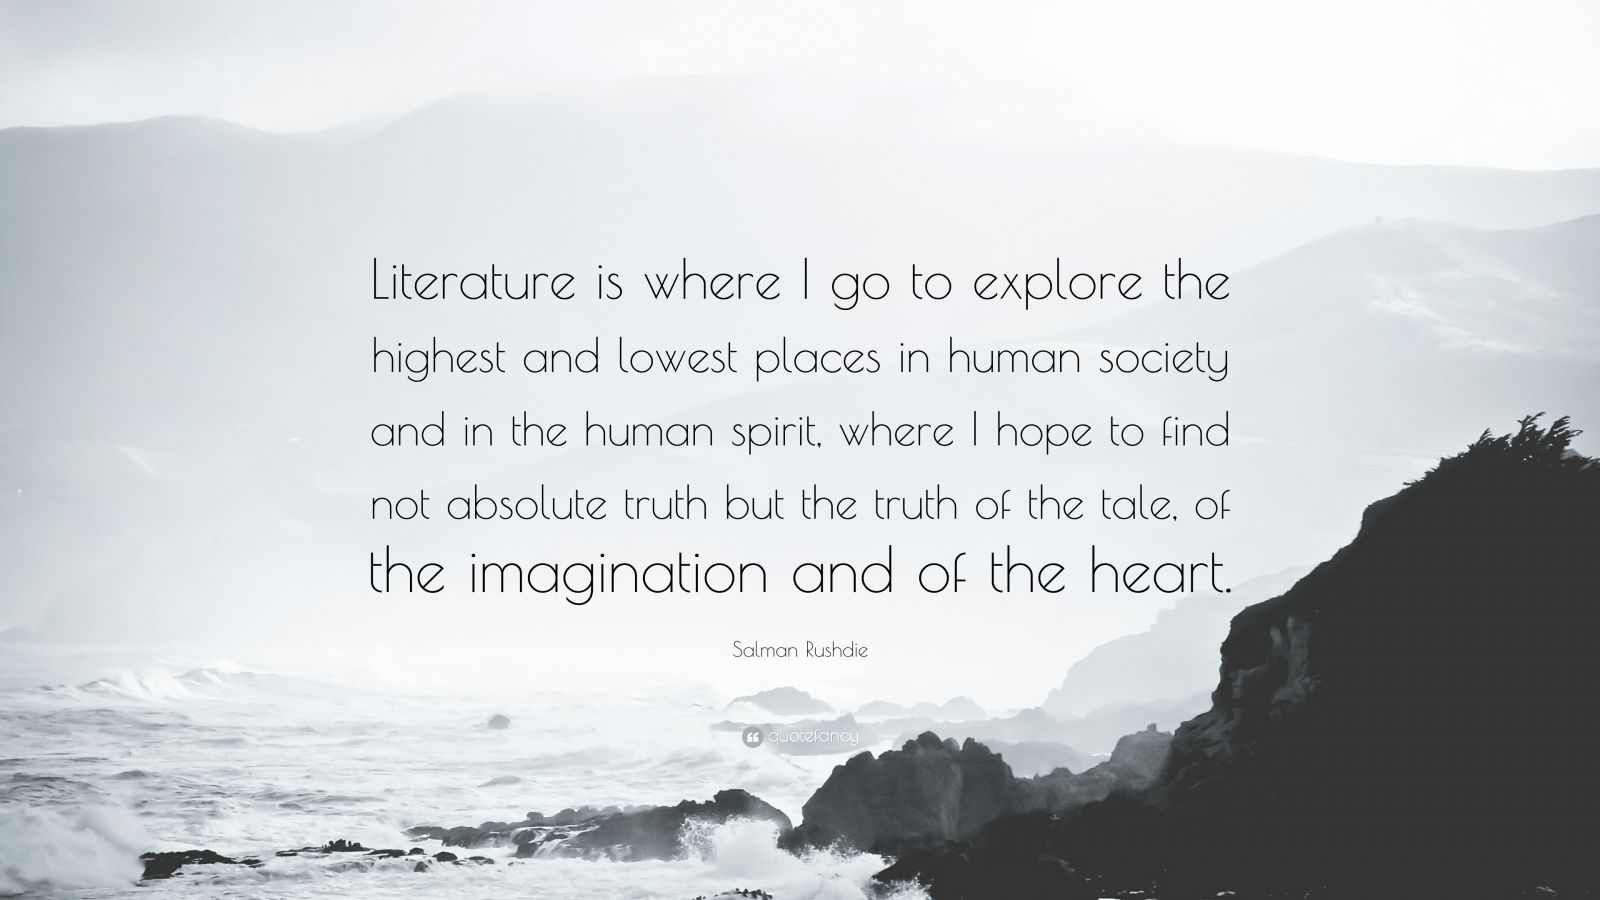 """Salman Rushdie Quote: """"Literature is where I go to explore the highest and lowest places in human society and in the human spirit, where I hope to find not absolute truth but the truth of the tale, of the imagination and of the heart."""""""